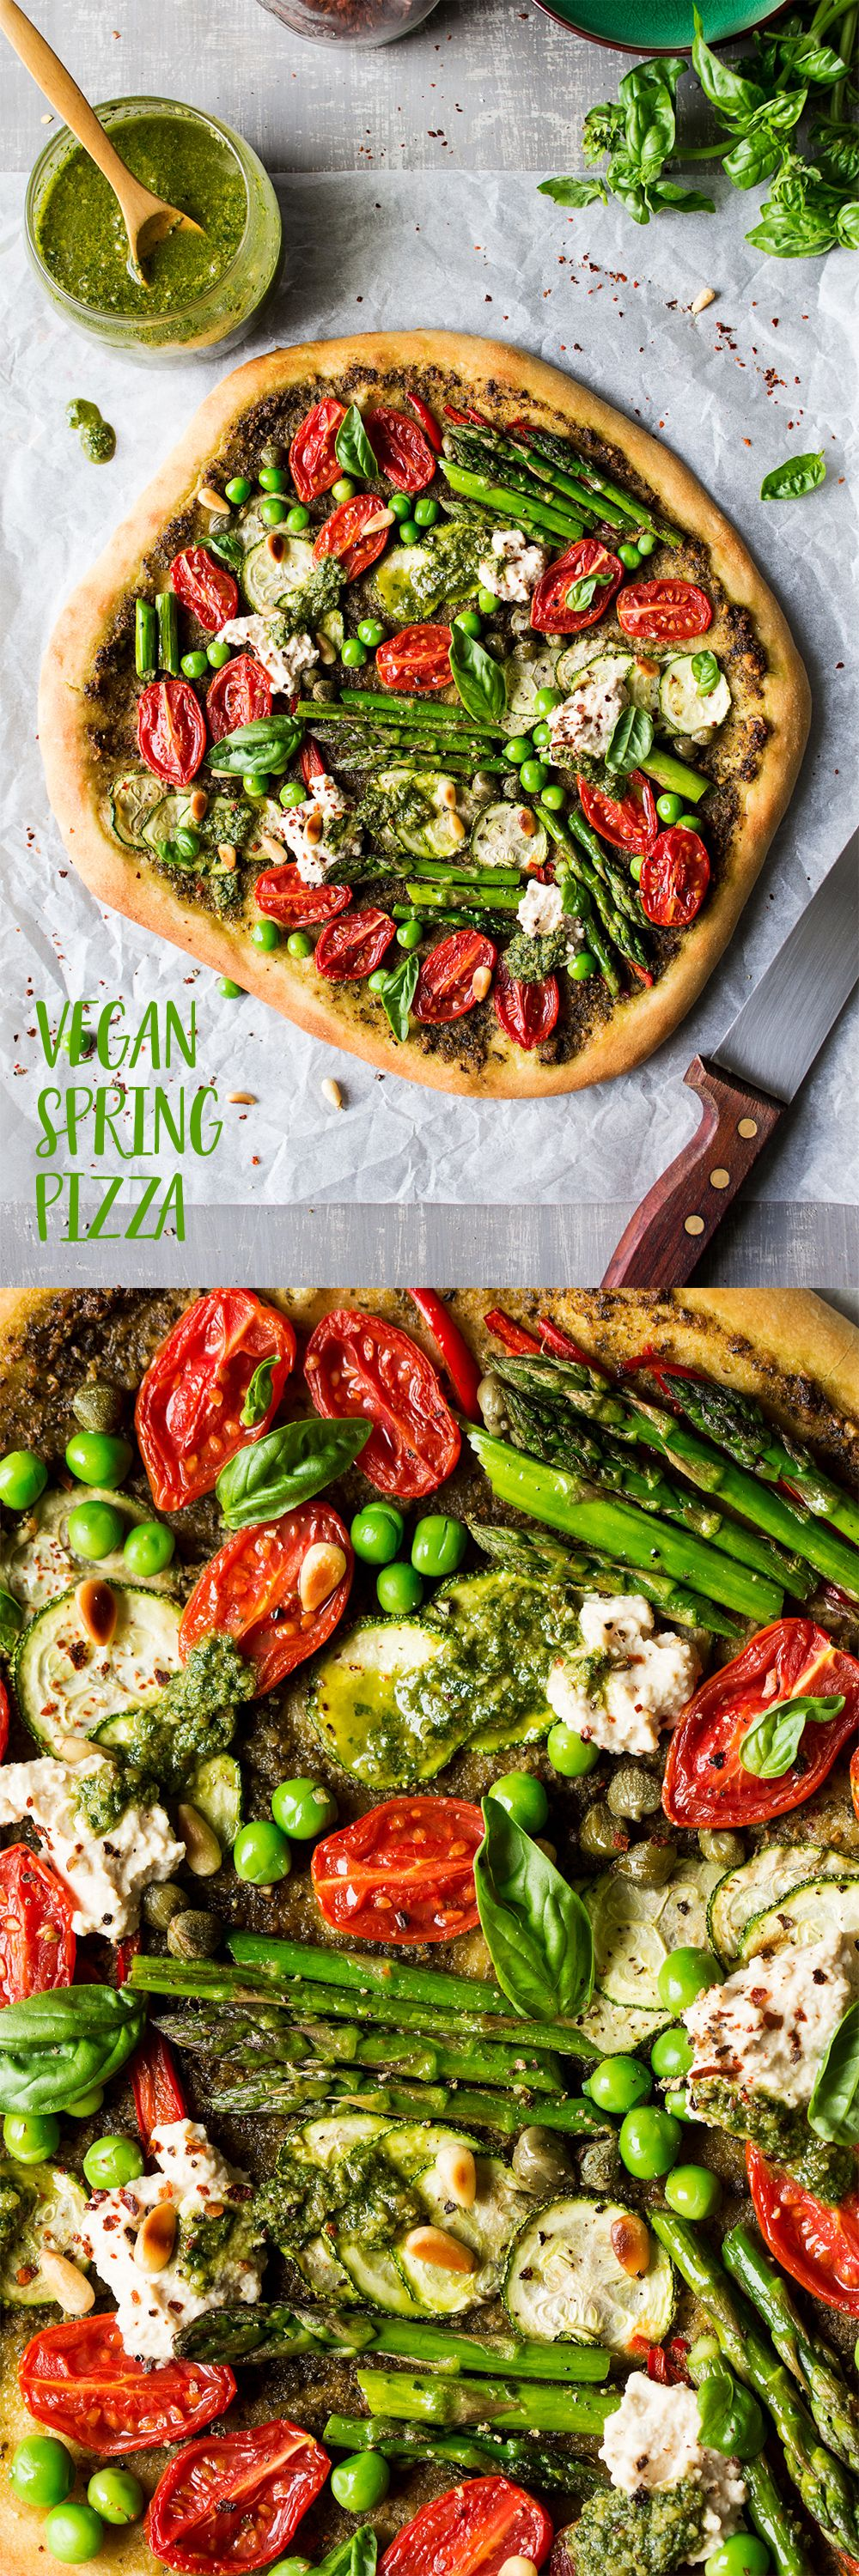 Spring Cheeseless Pizza